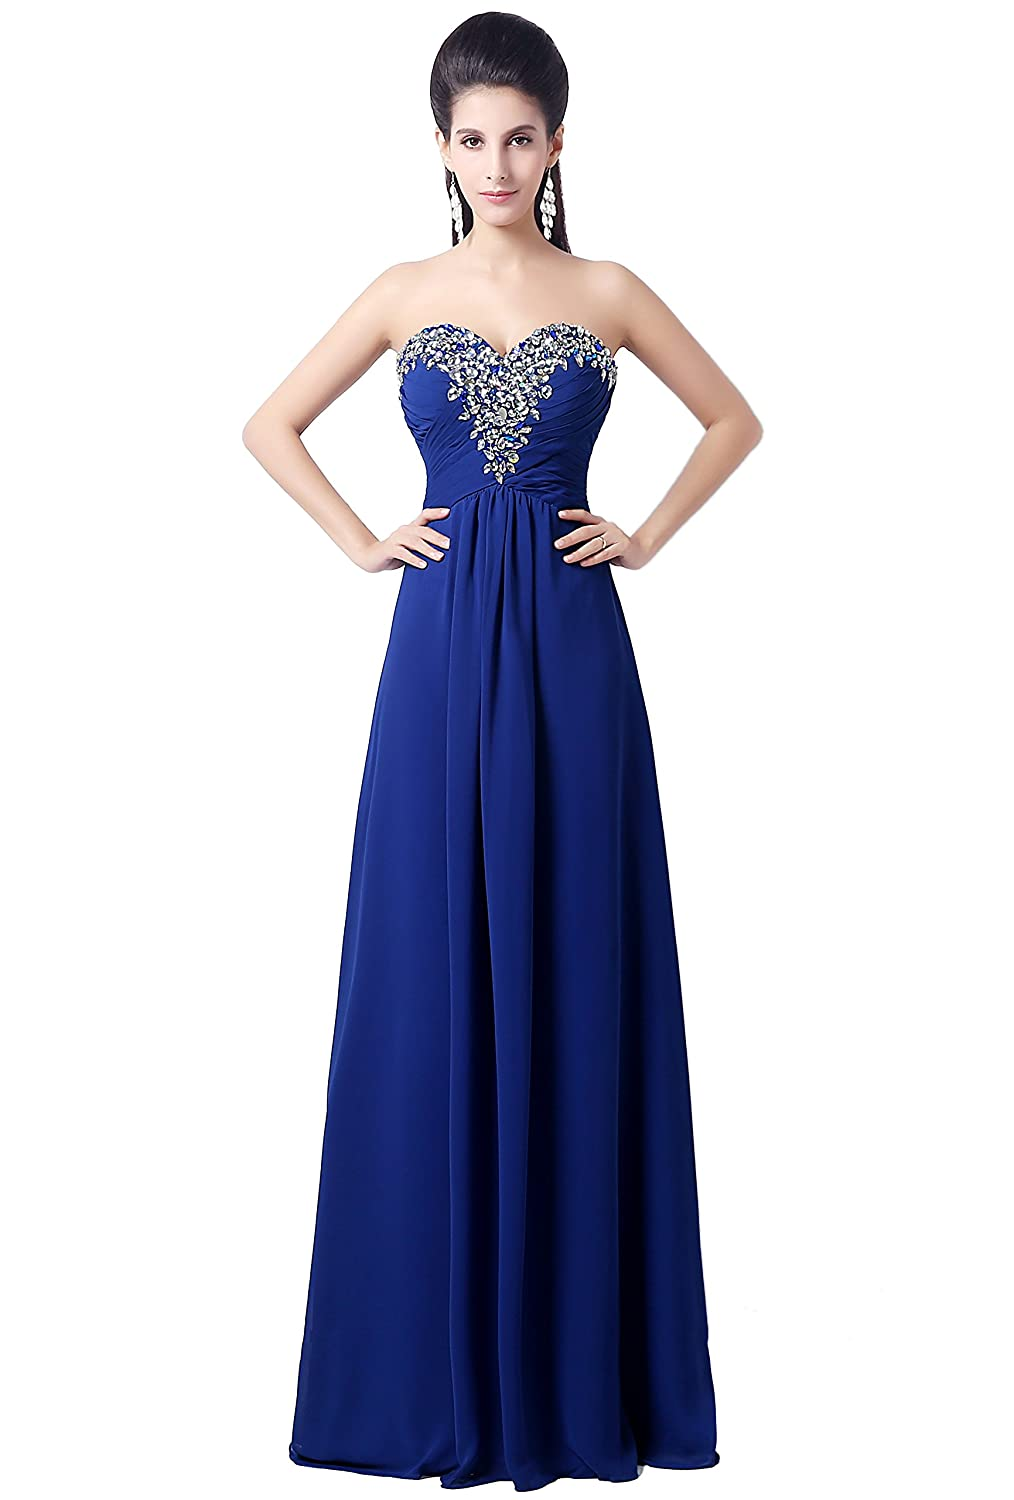 Bridal Mall Women's Bridesmaid Dress Sweetheart Chiffon Party Evening Gowns